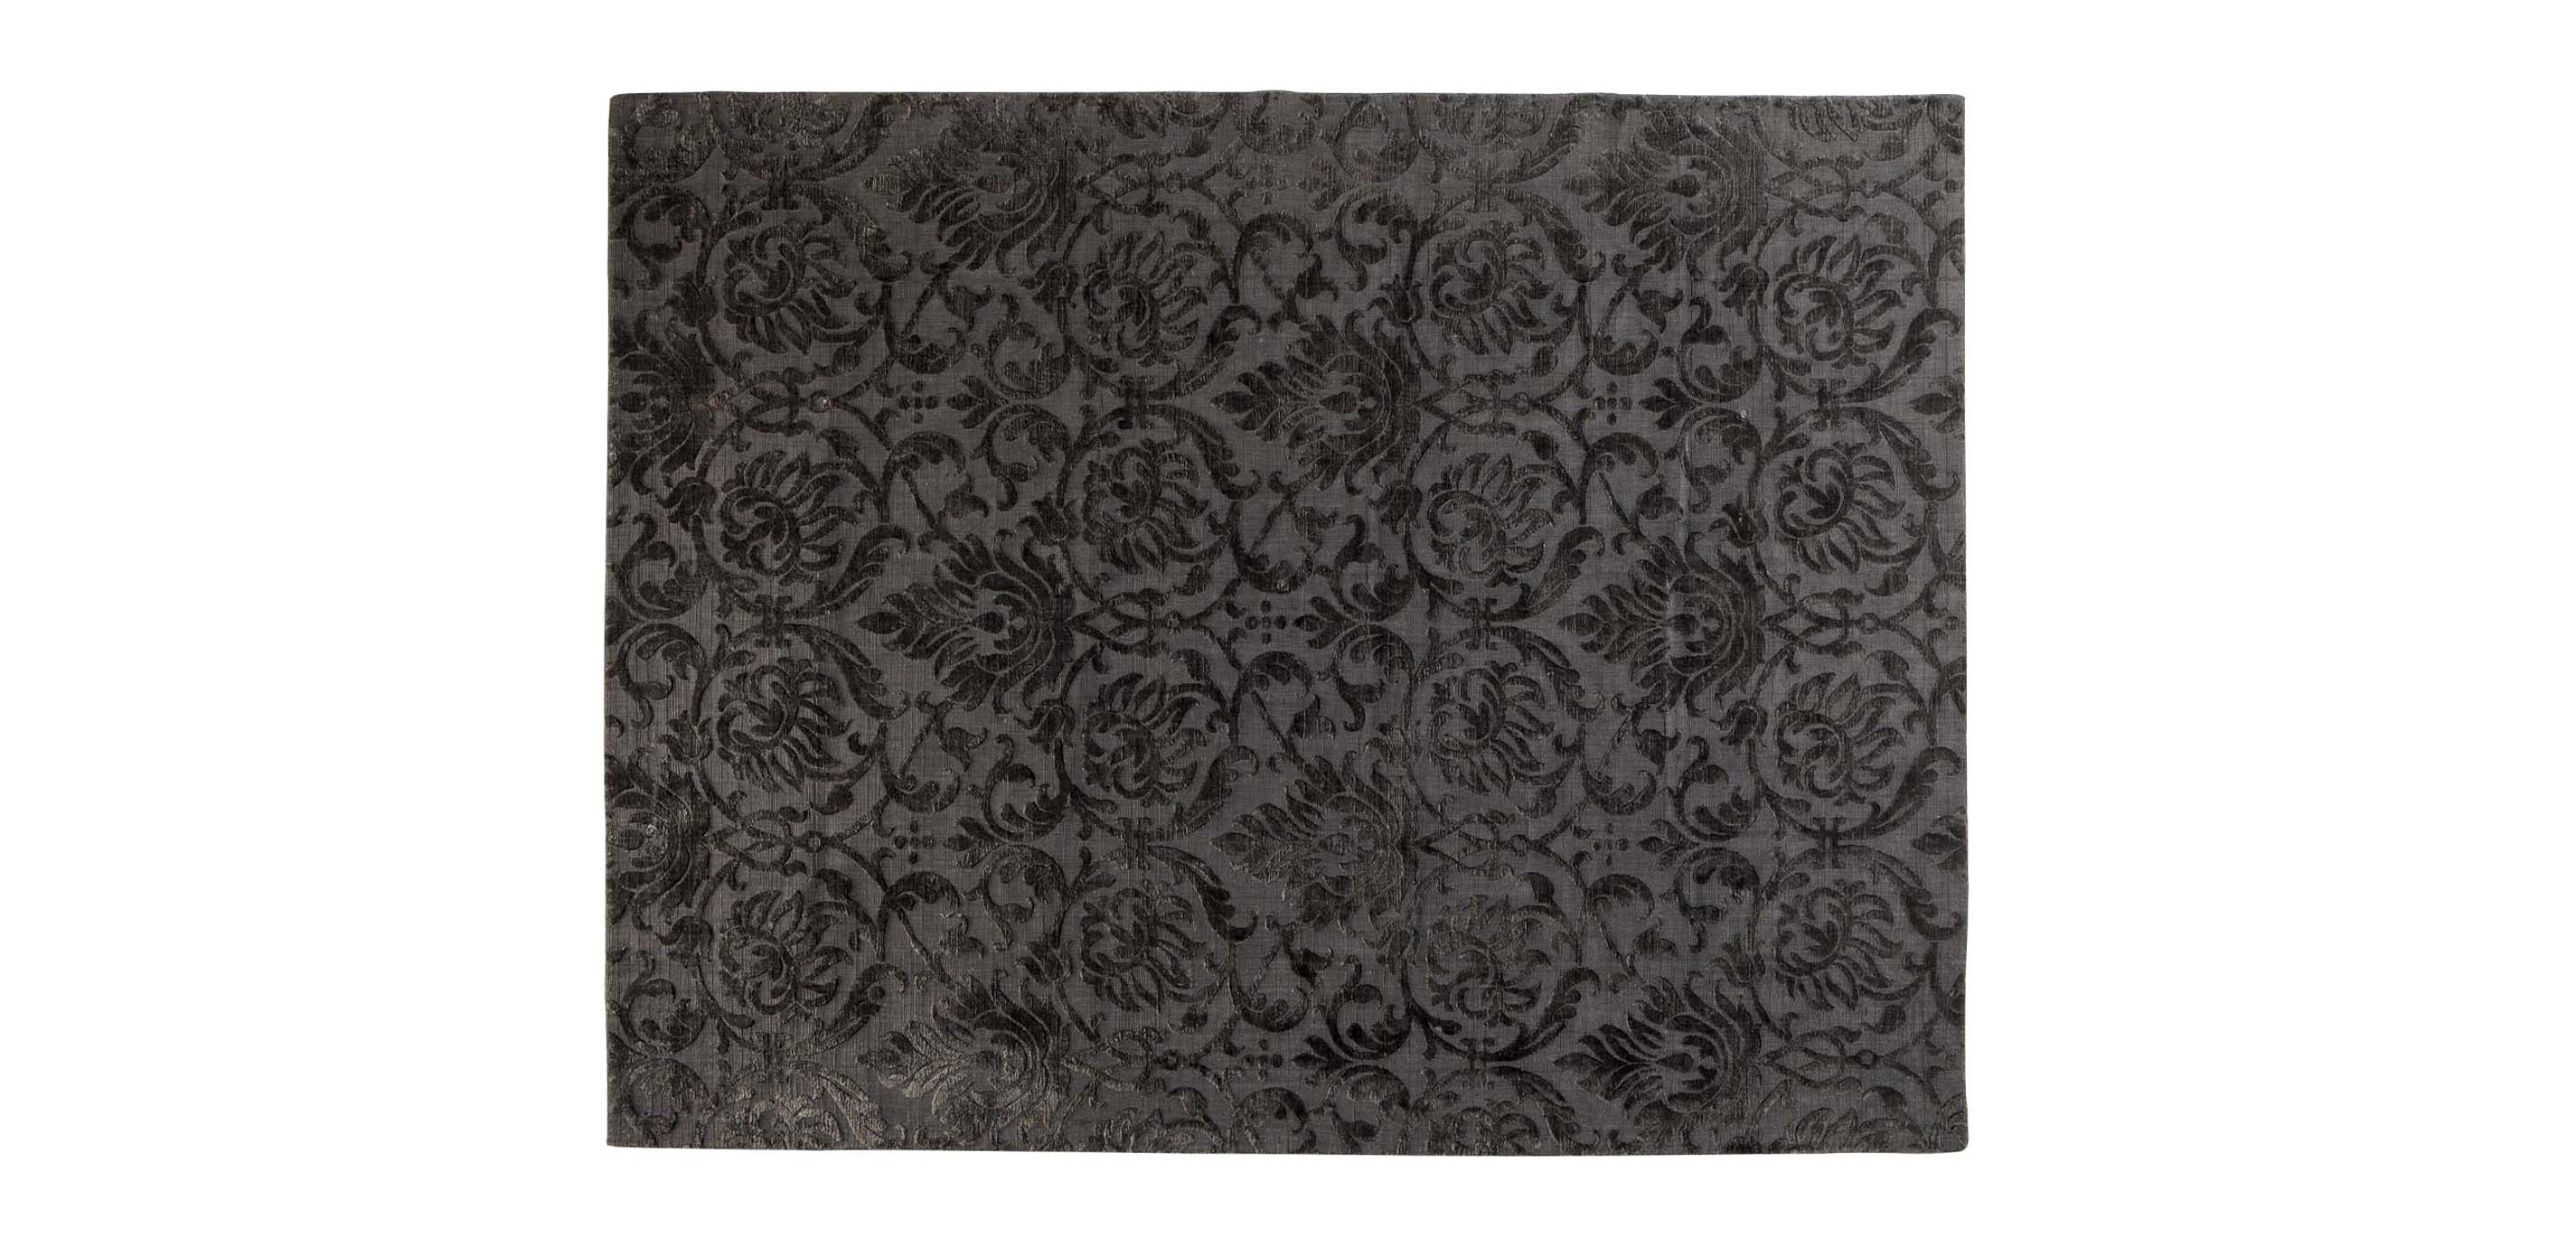 Jacquard Damask Rug In Charcoal